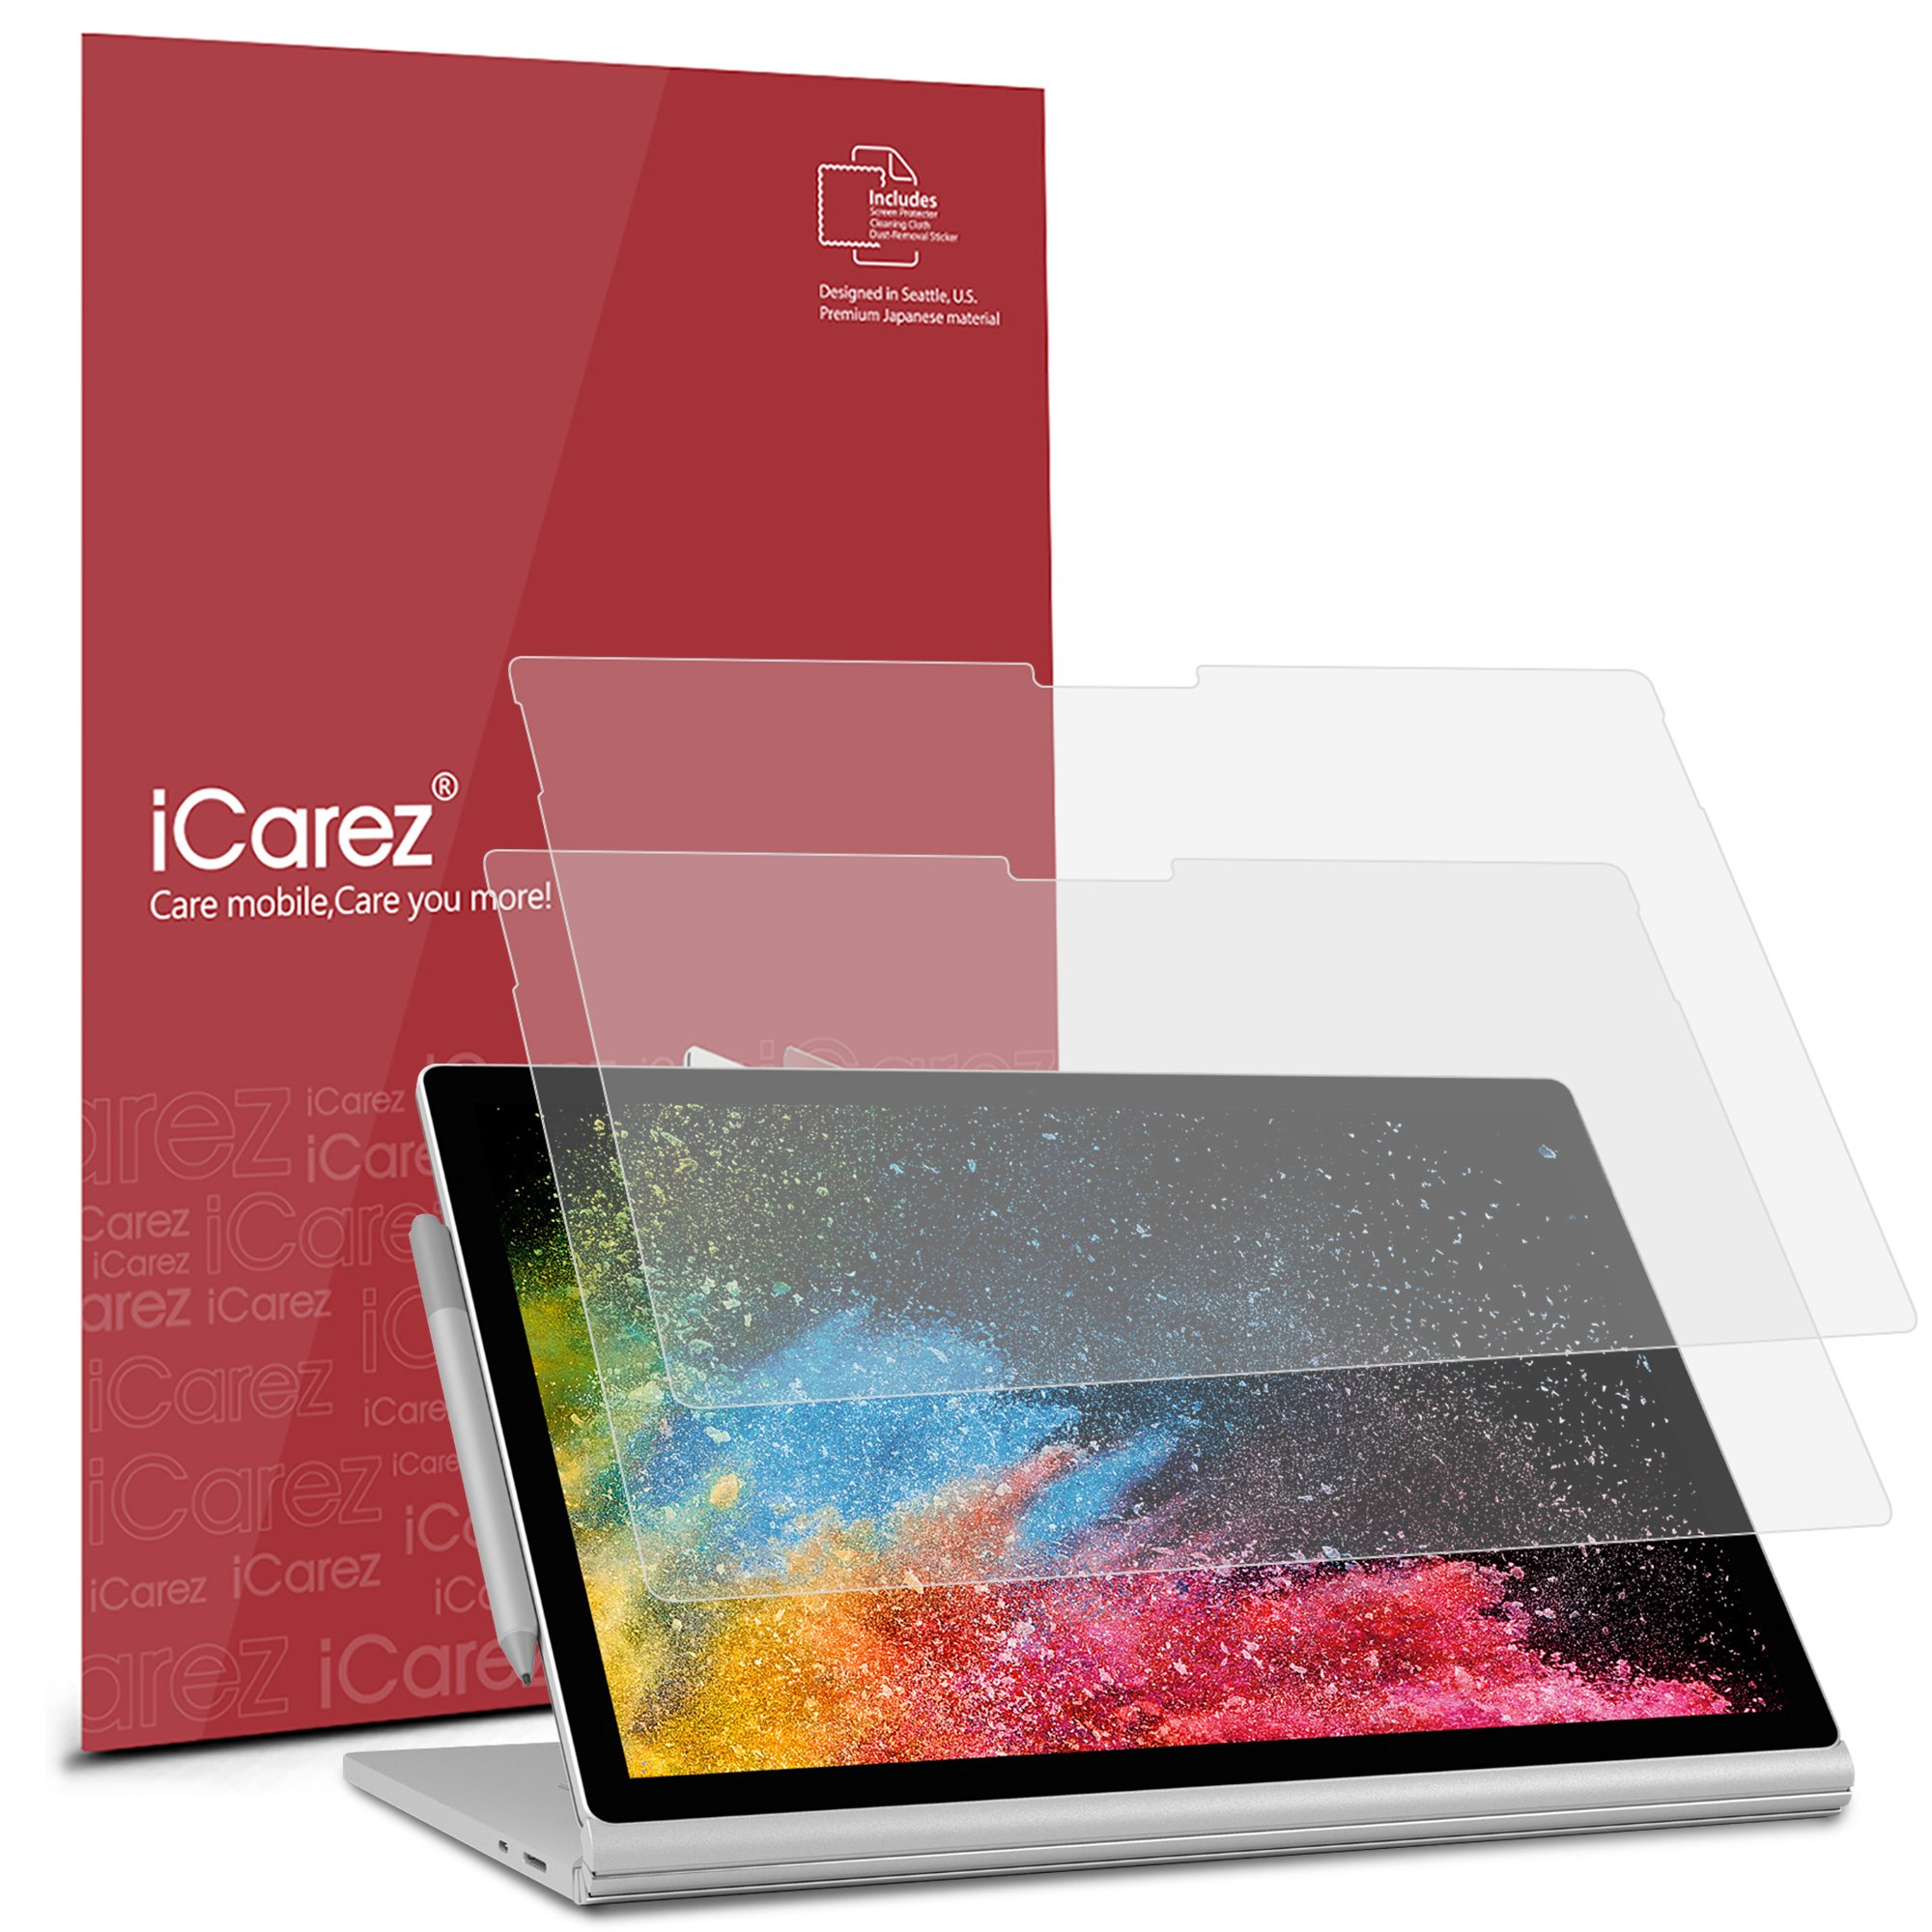 iCarez Matte Screen Protector for Surface Book 2 (2017) 13.5-Inches, 2-Pack Anti-glare